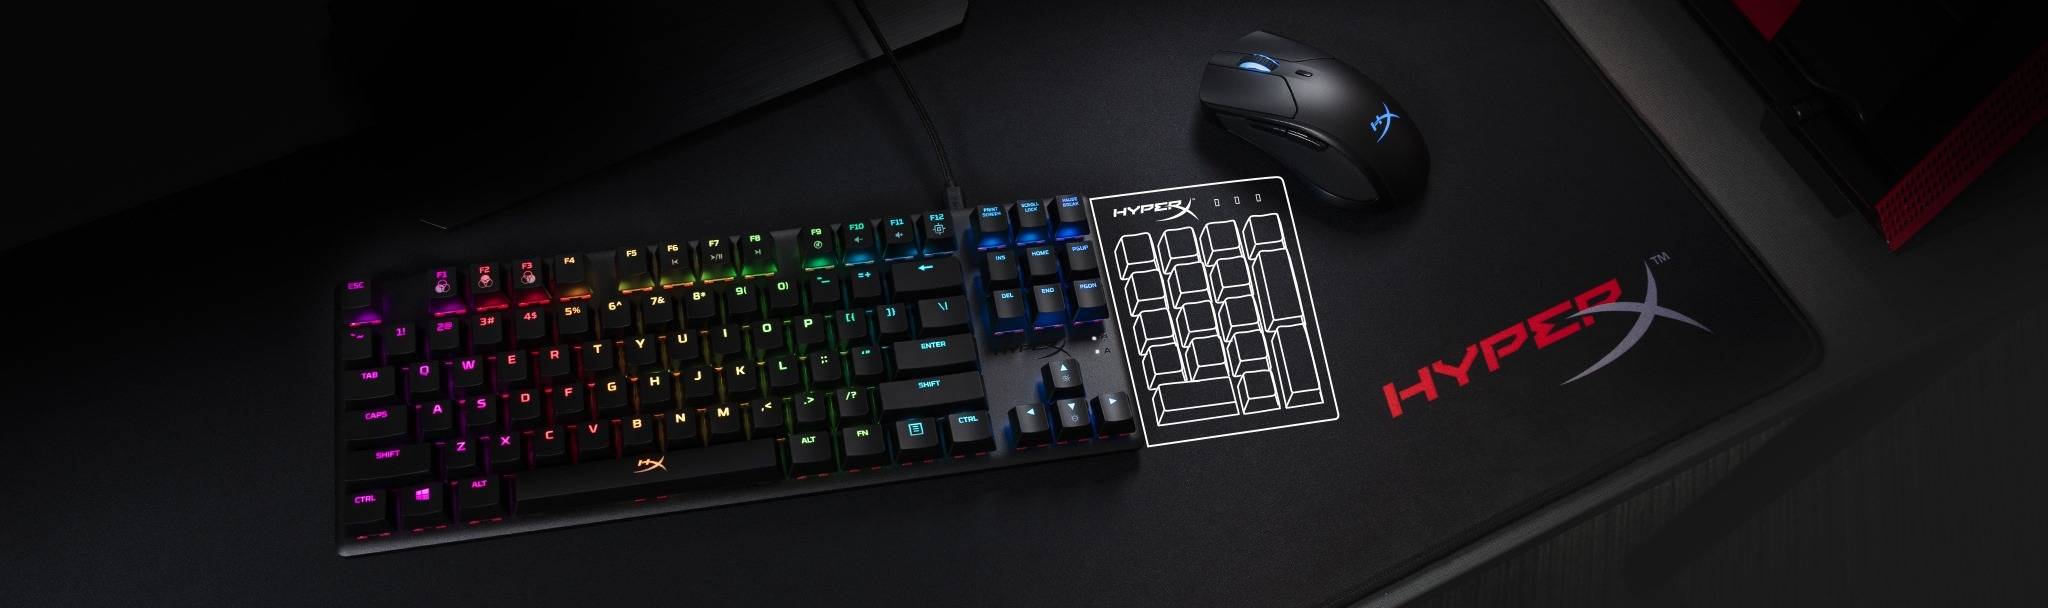 hx-keyfeatures_gaming_ready